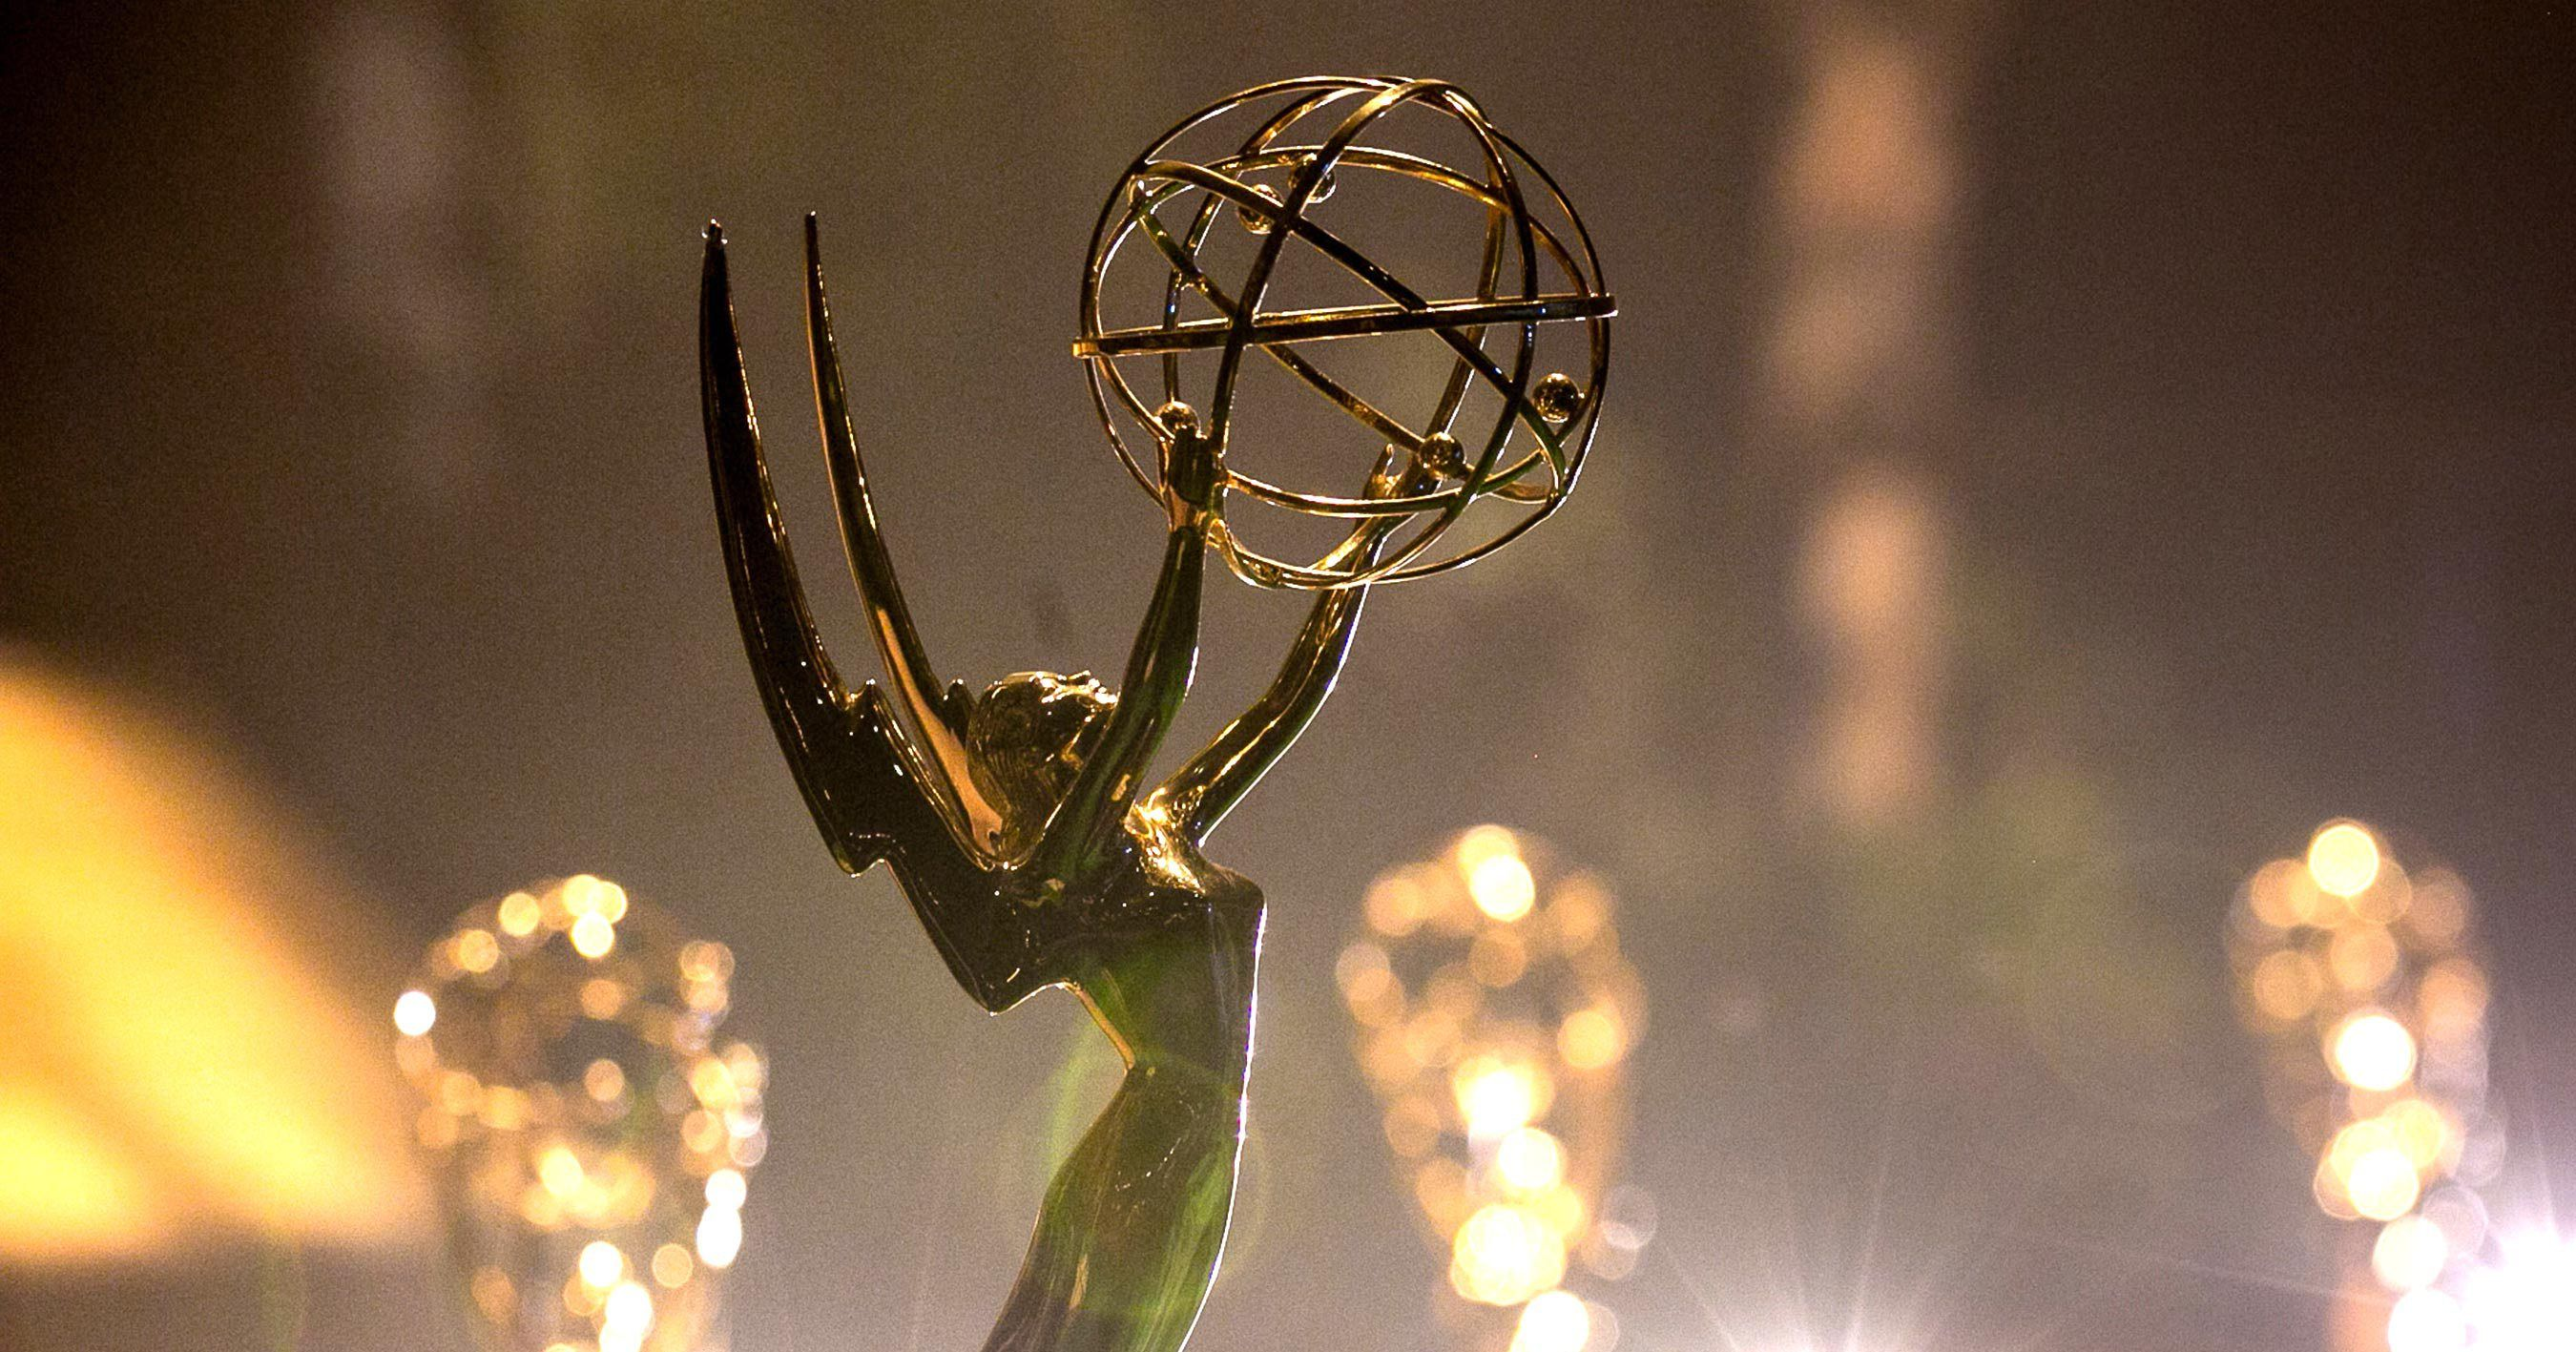 How to Watch the Emmys Tonight Without Cable The emmys